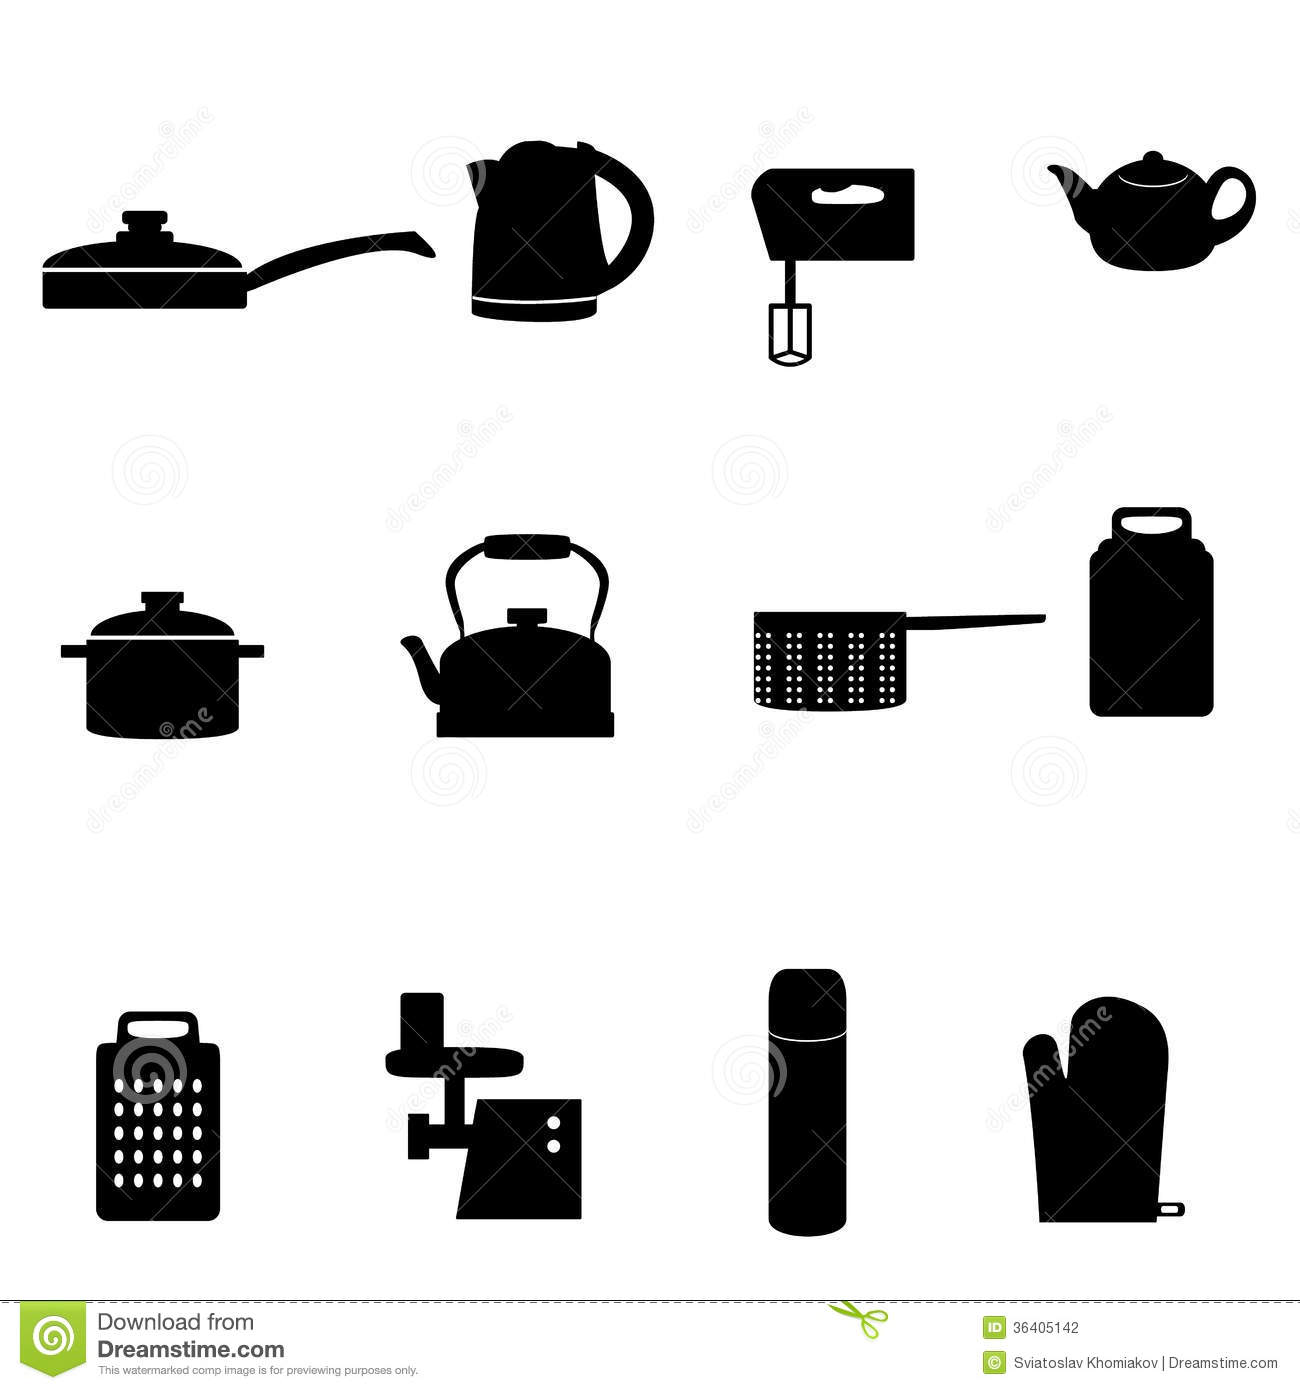 icons of different types of kitchen appliances stock